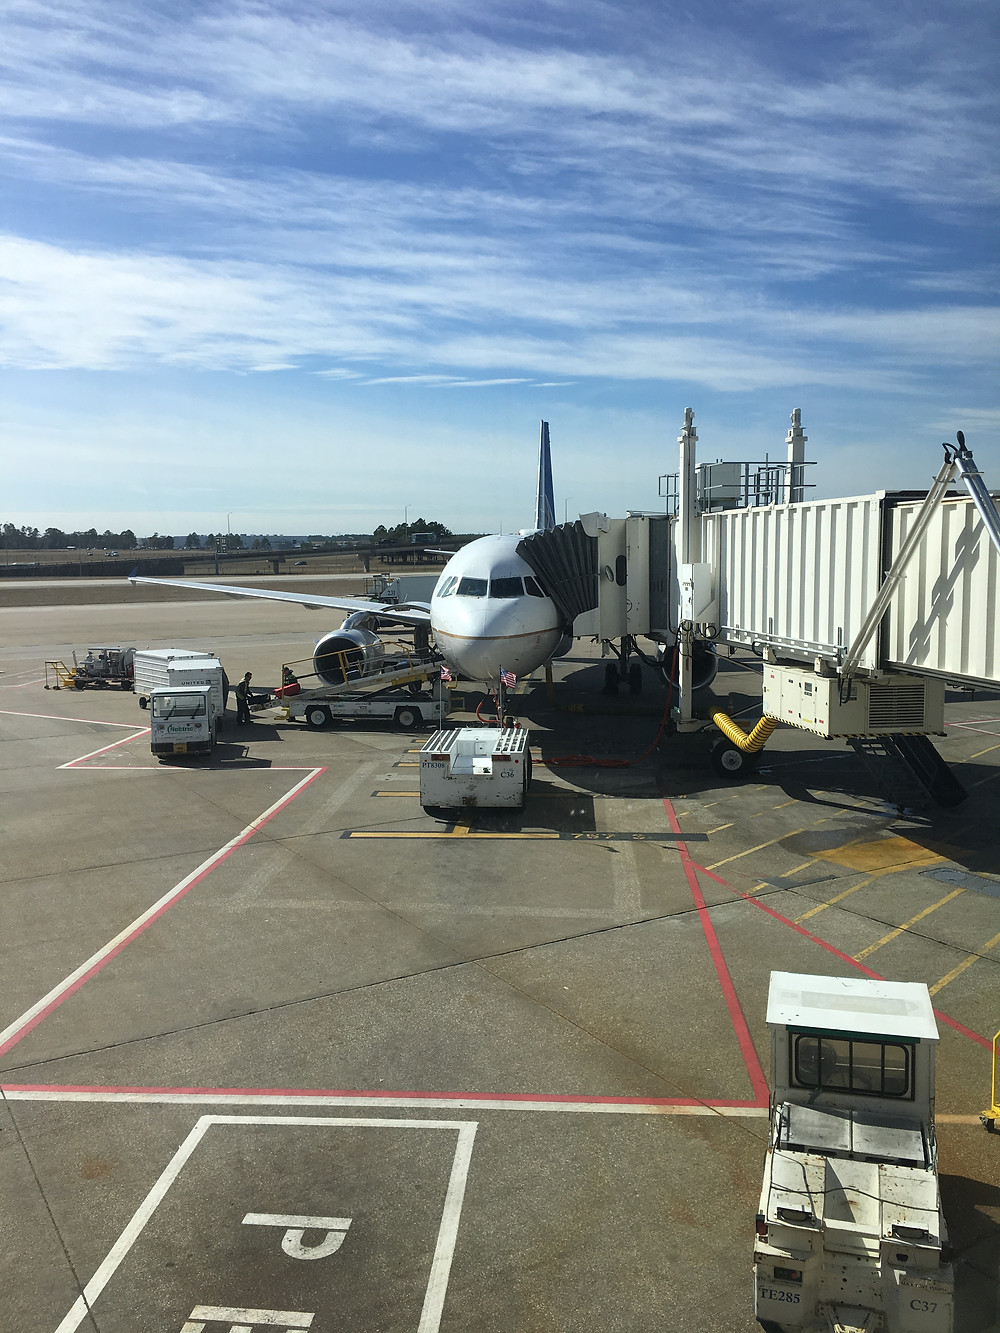 United Airlines plane at the gate in Houston